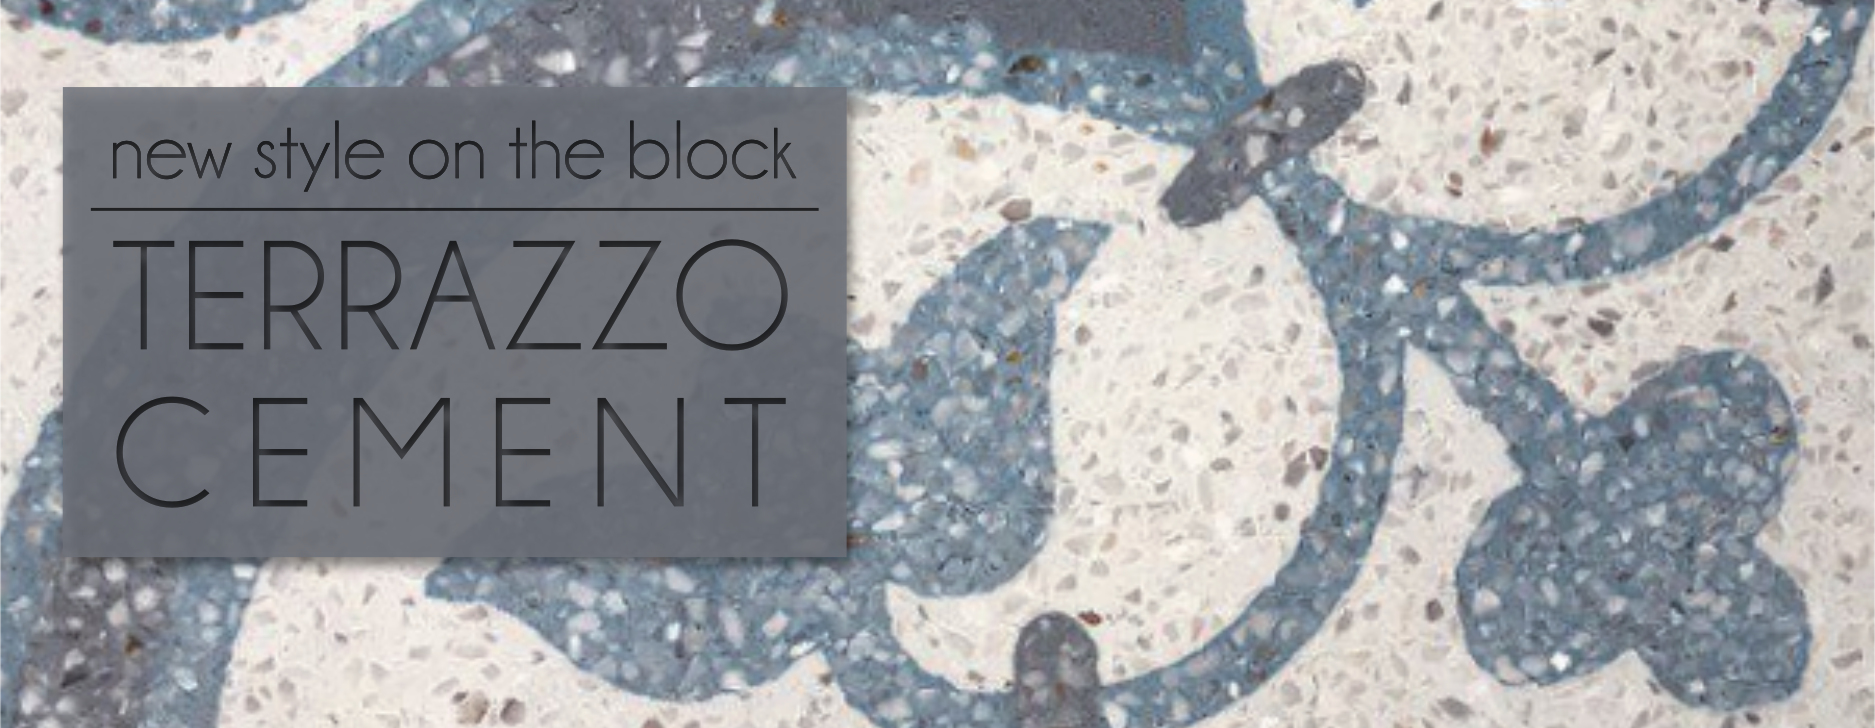 new style on the block: terrazzo cement tile